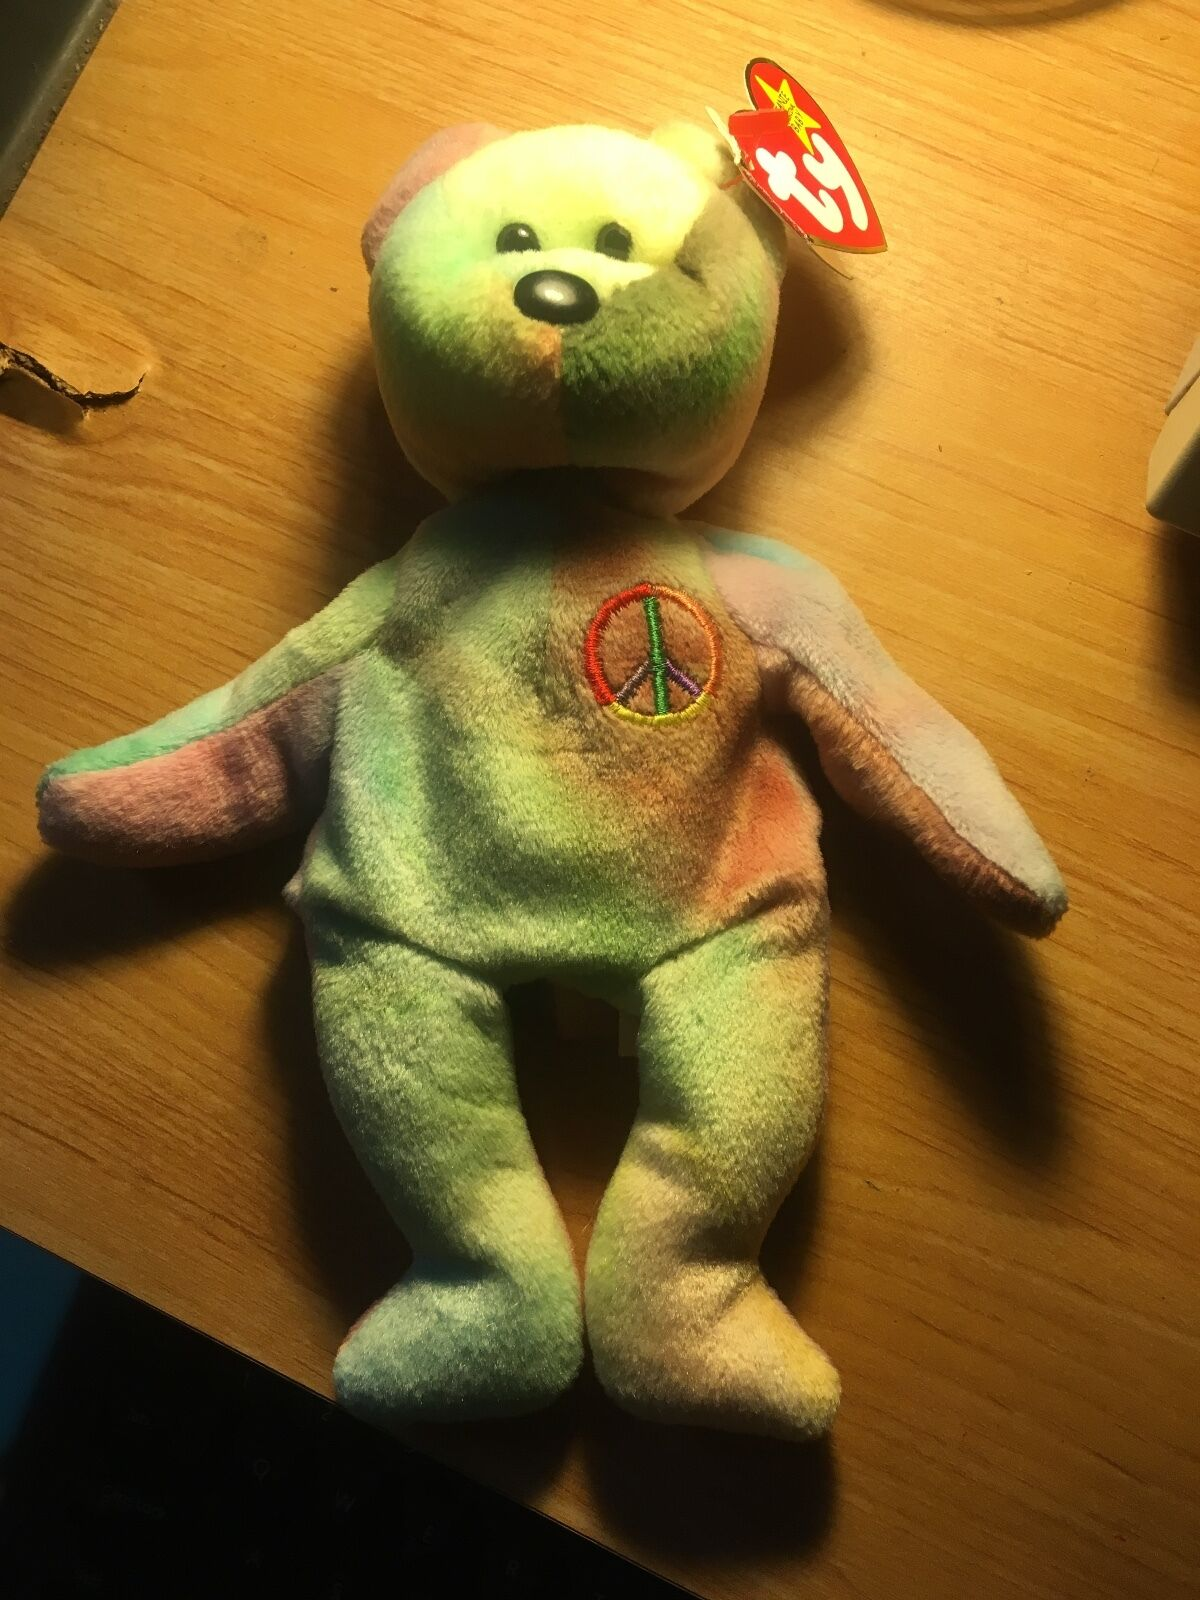 UNIQUE UNIQUE UNIQUE RARE  TY Peace Bear Beanie Baby with All TAG ERRORS MWMT a42dd4